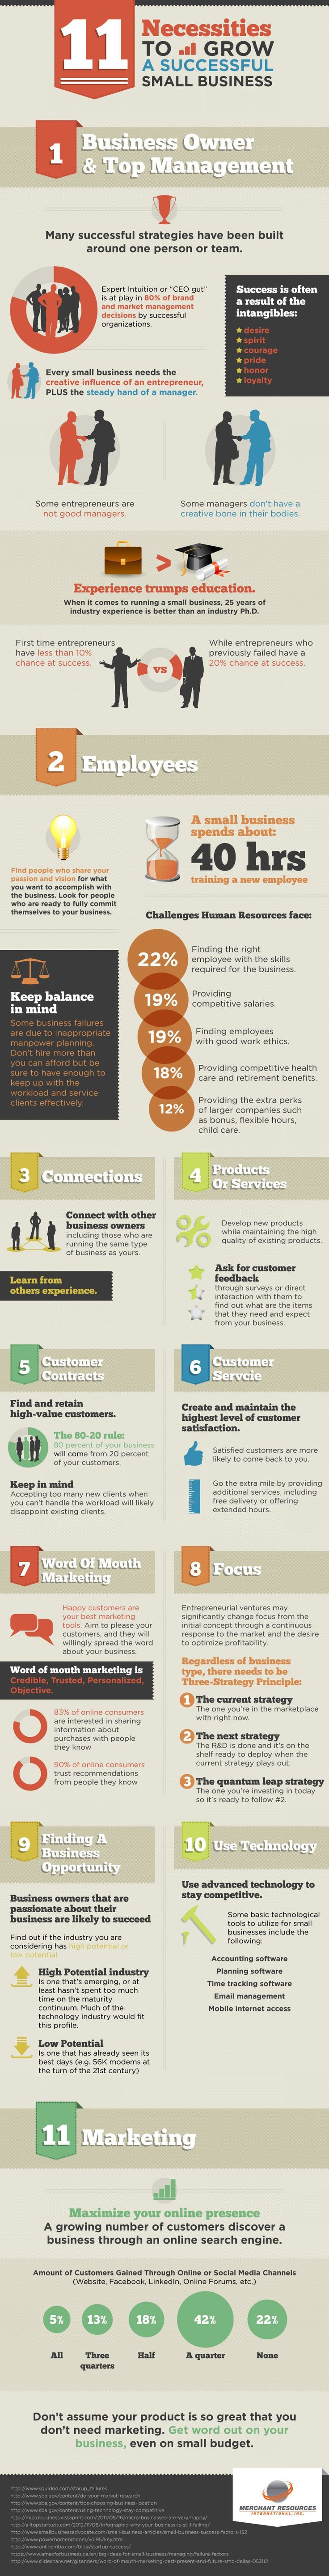 What necessary steps do you need to take in order to group your small business? This infographic shares 11 tips.